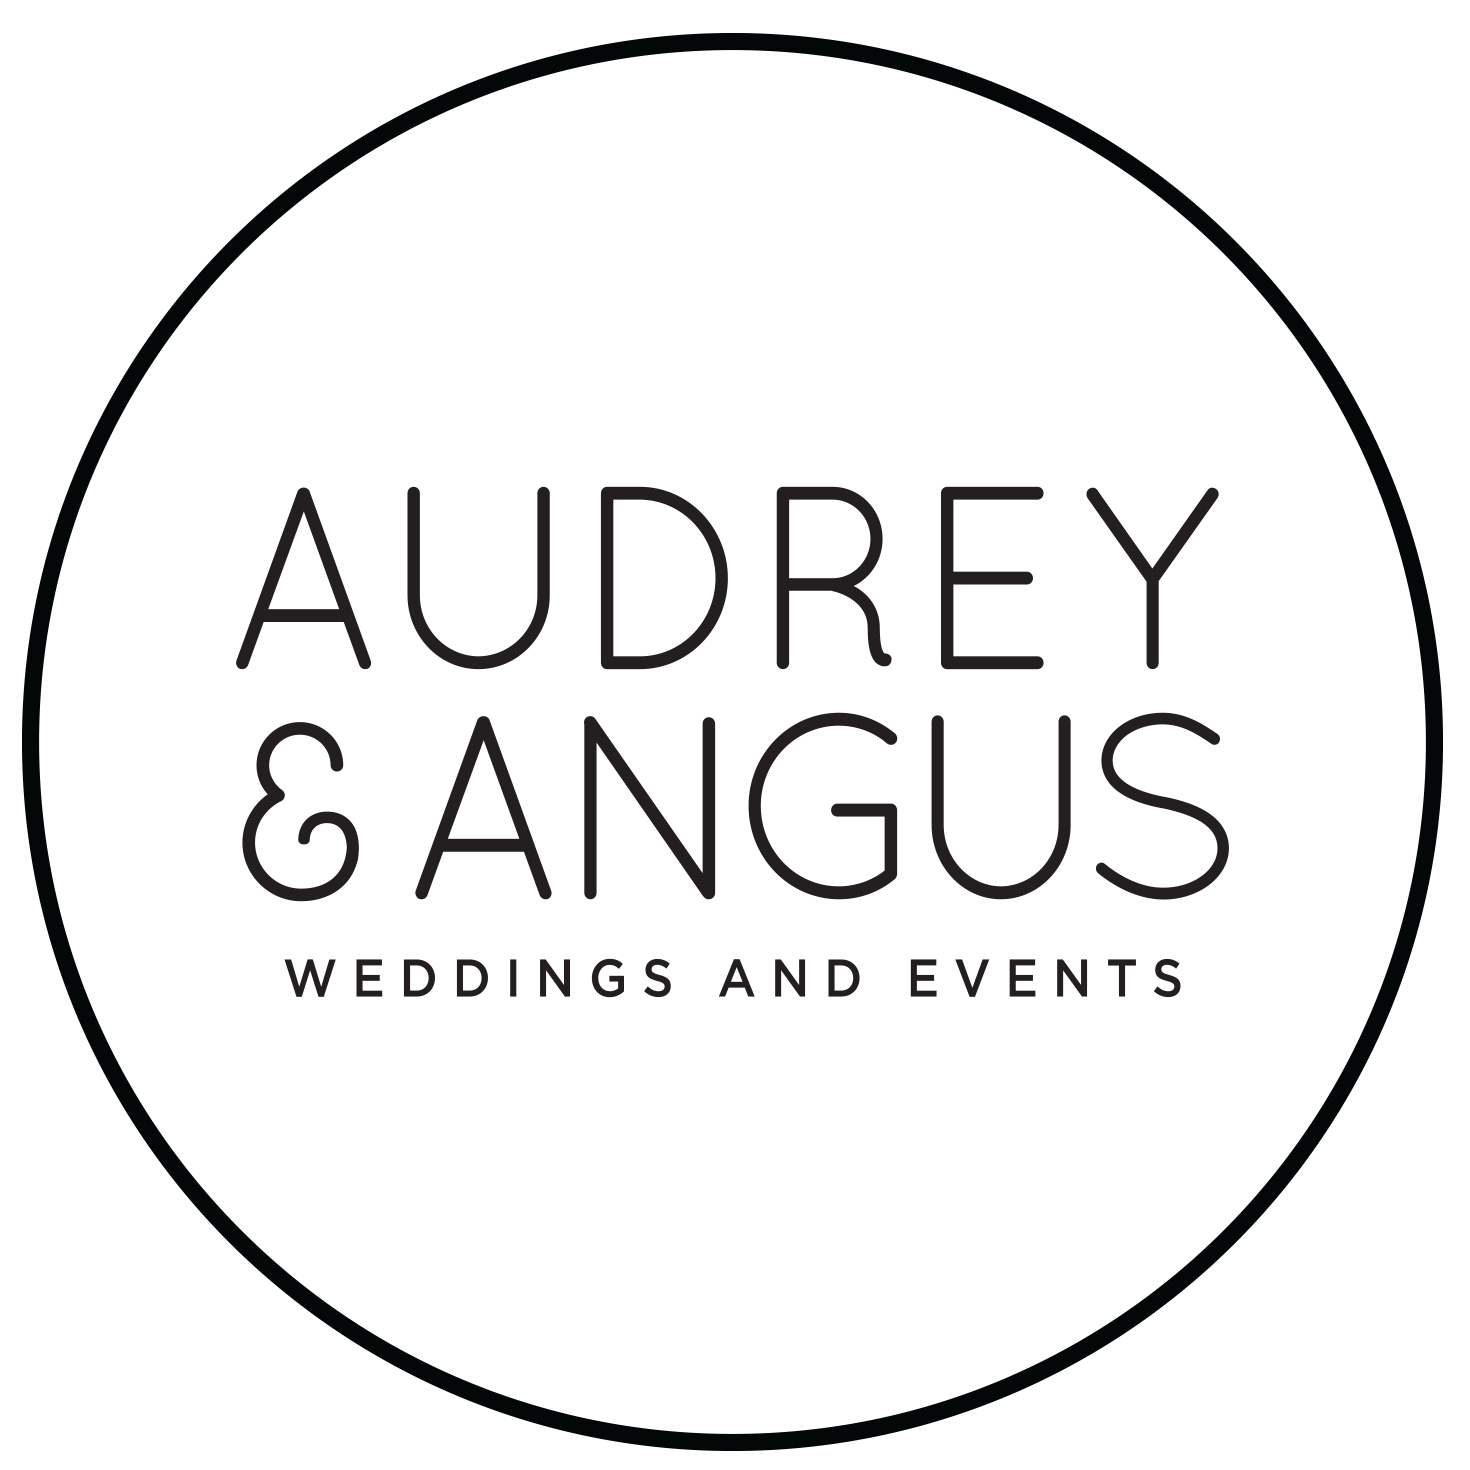 SYDNEY WEDDING PLANNER | Audrey & Angus Weddings and Events